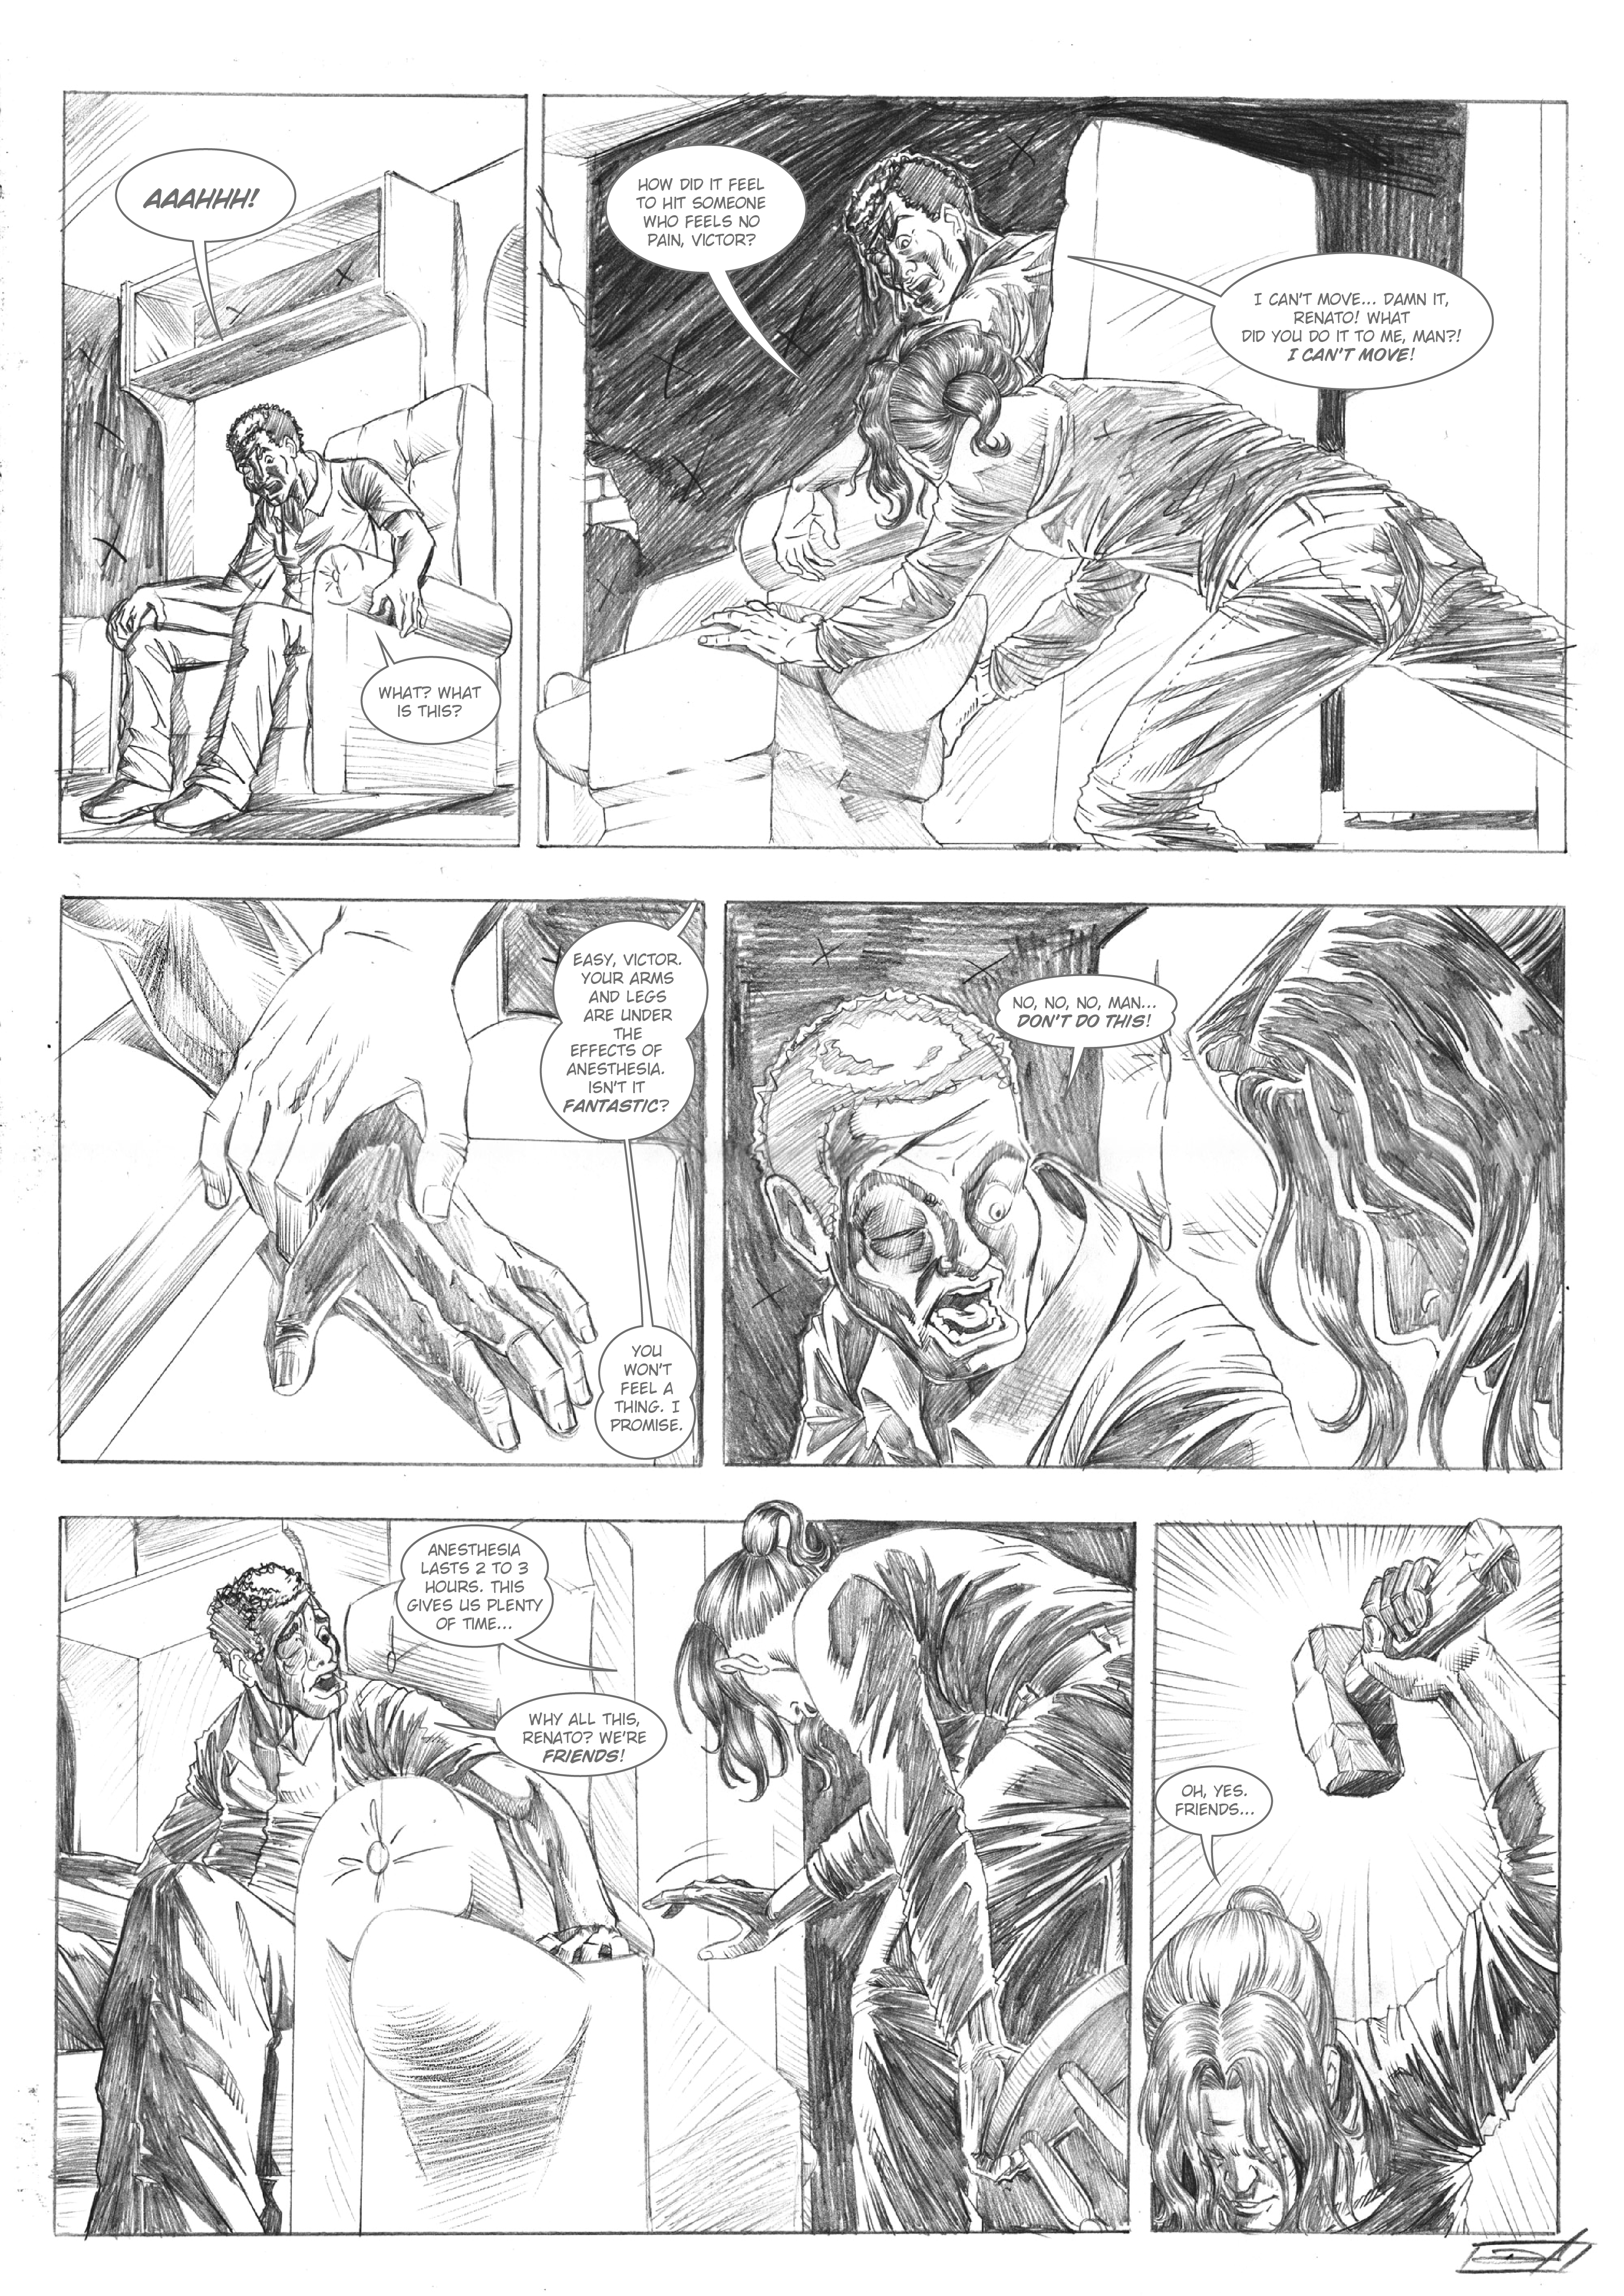 Nascido Morto - p.2 - Alex Moletta. Art by Dan Arrows